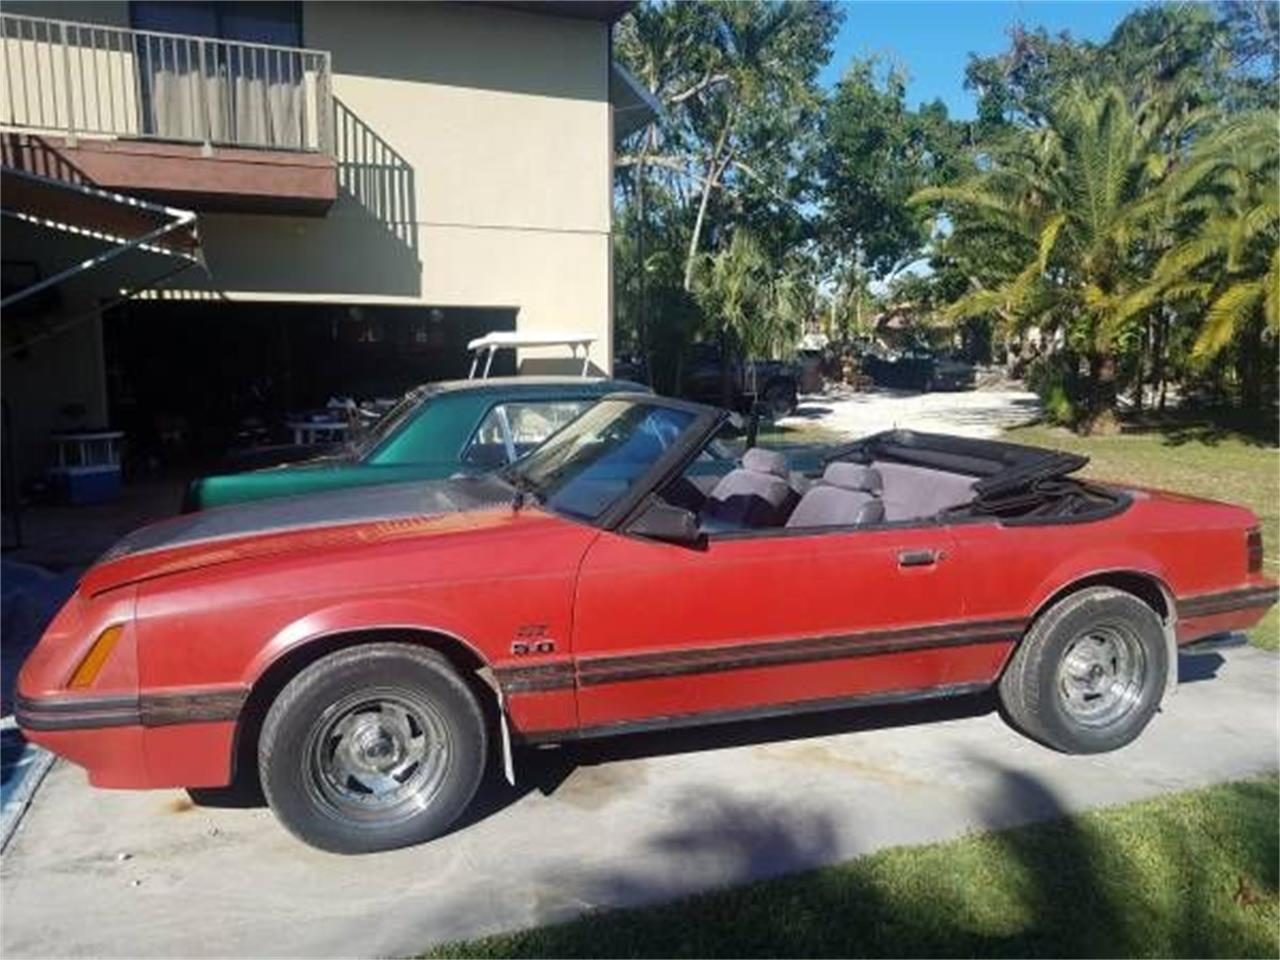 Large picture of 84 mustang o2v3